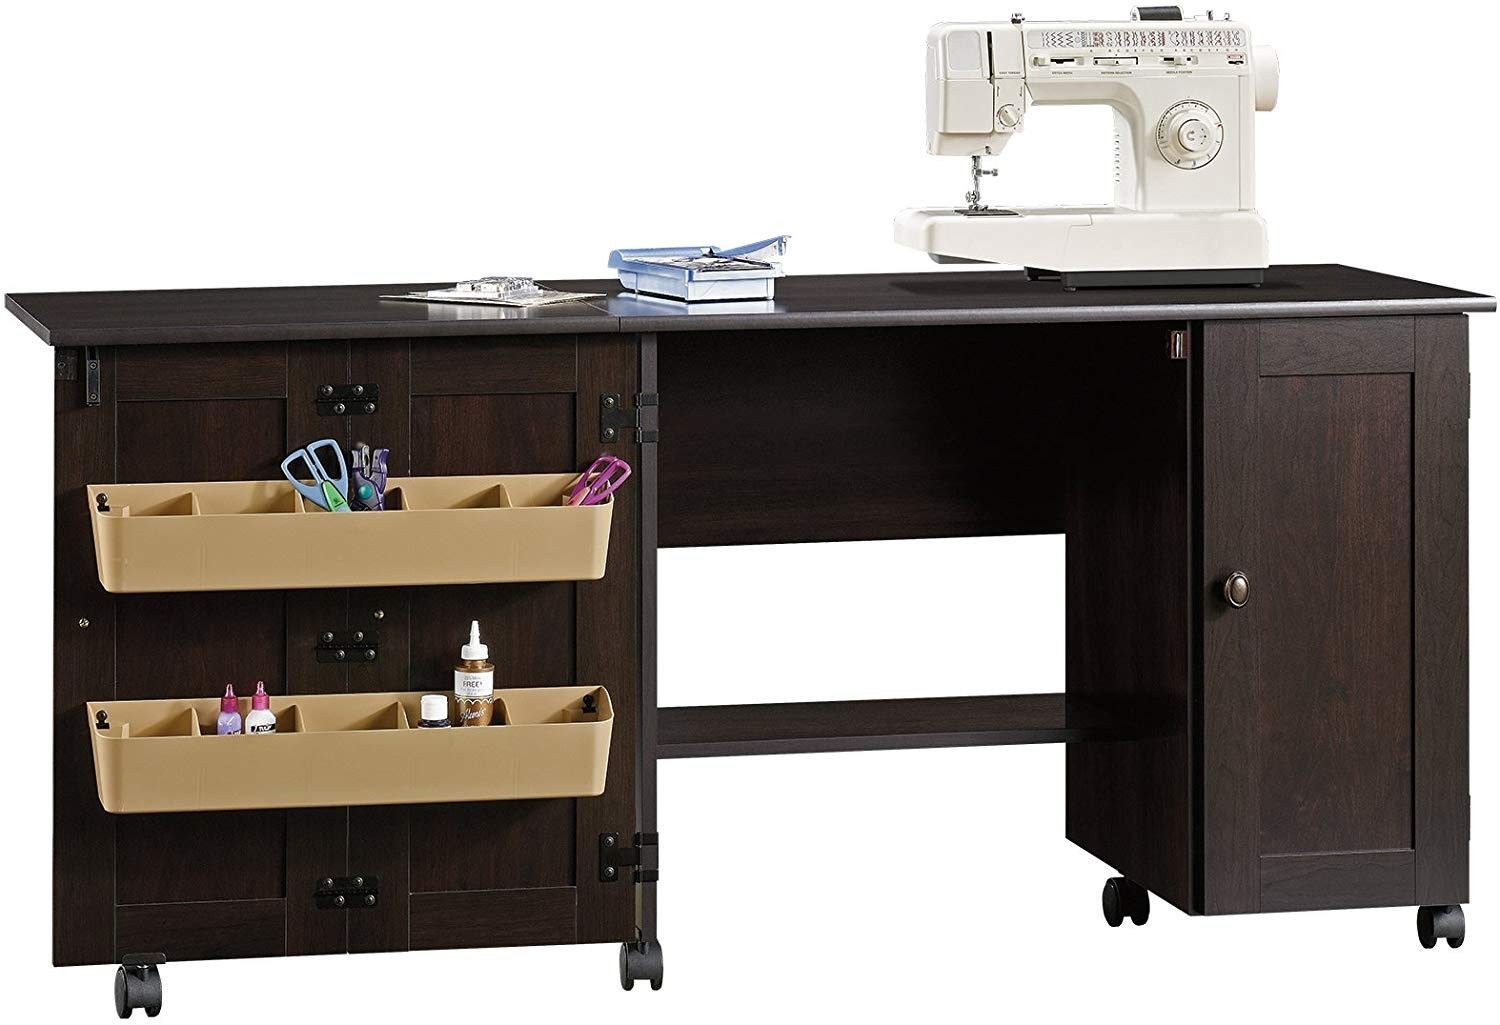 Pin By Mary Fortner On Furniture Sewing Machine Tables